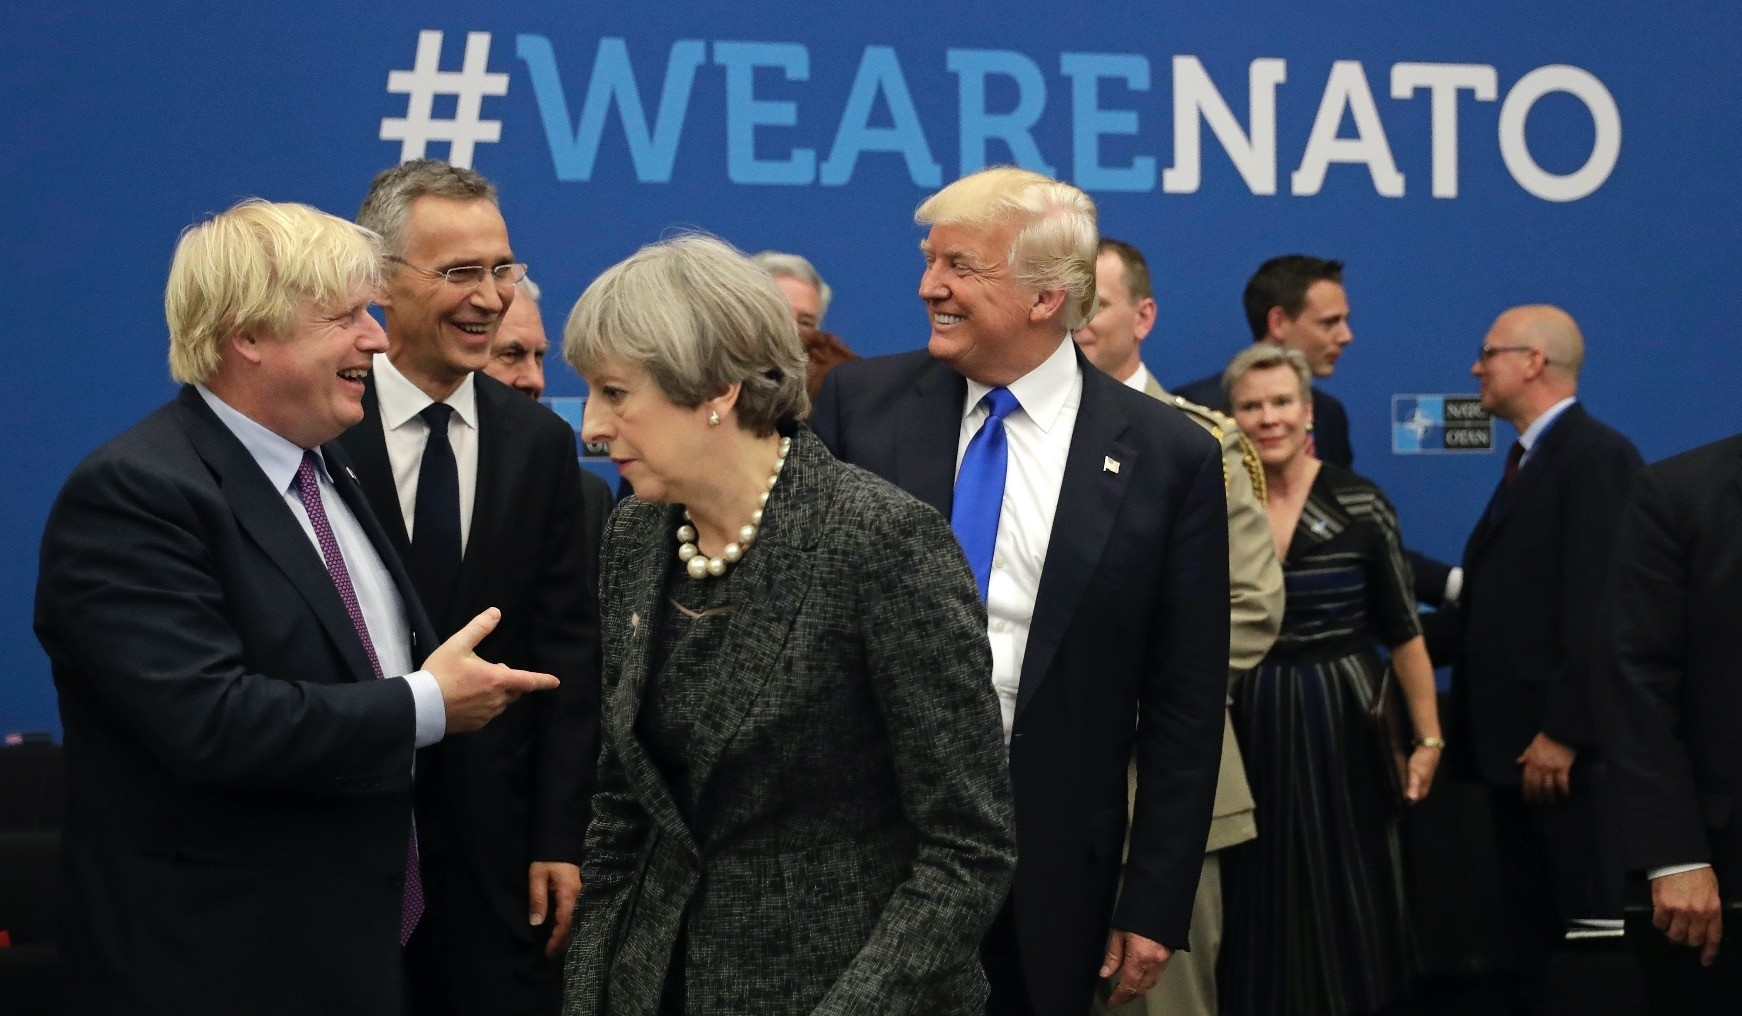 U.S. President Donald Trump jokes with then-Foreign Minister Boris Johnson of the U.K., as British Prime Minister Theresa May walks past during the annual summit at NATO headquarters, Brussels,  2017.